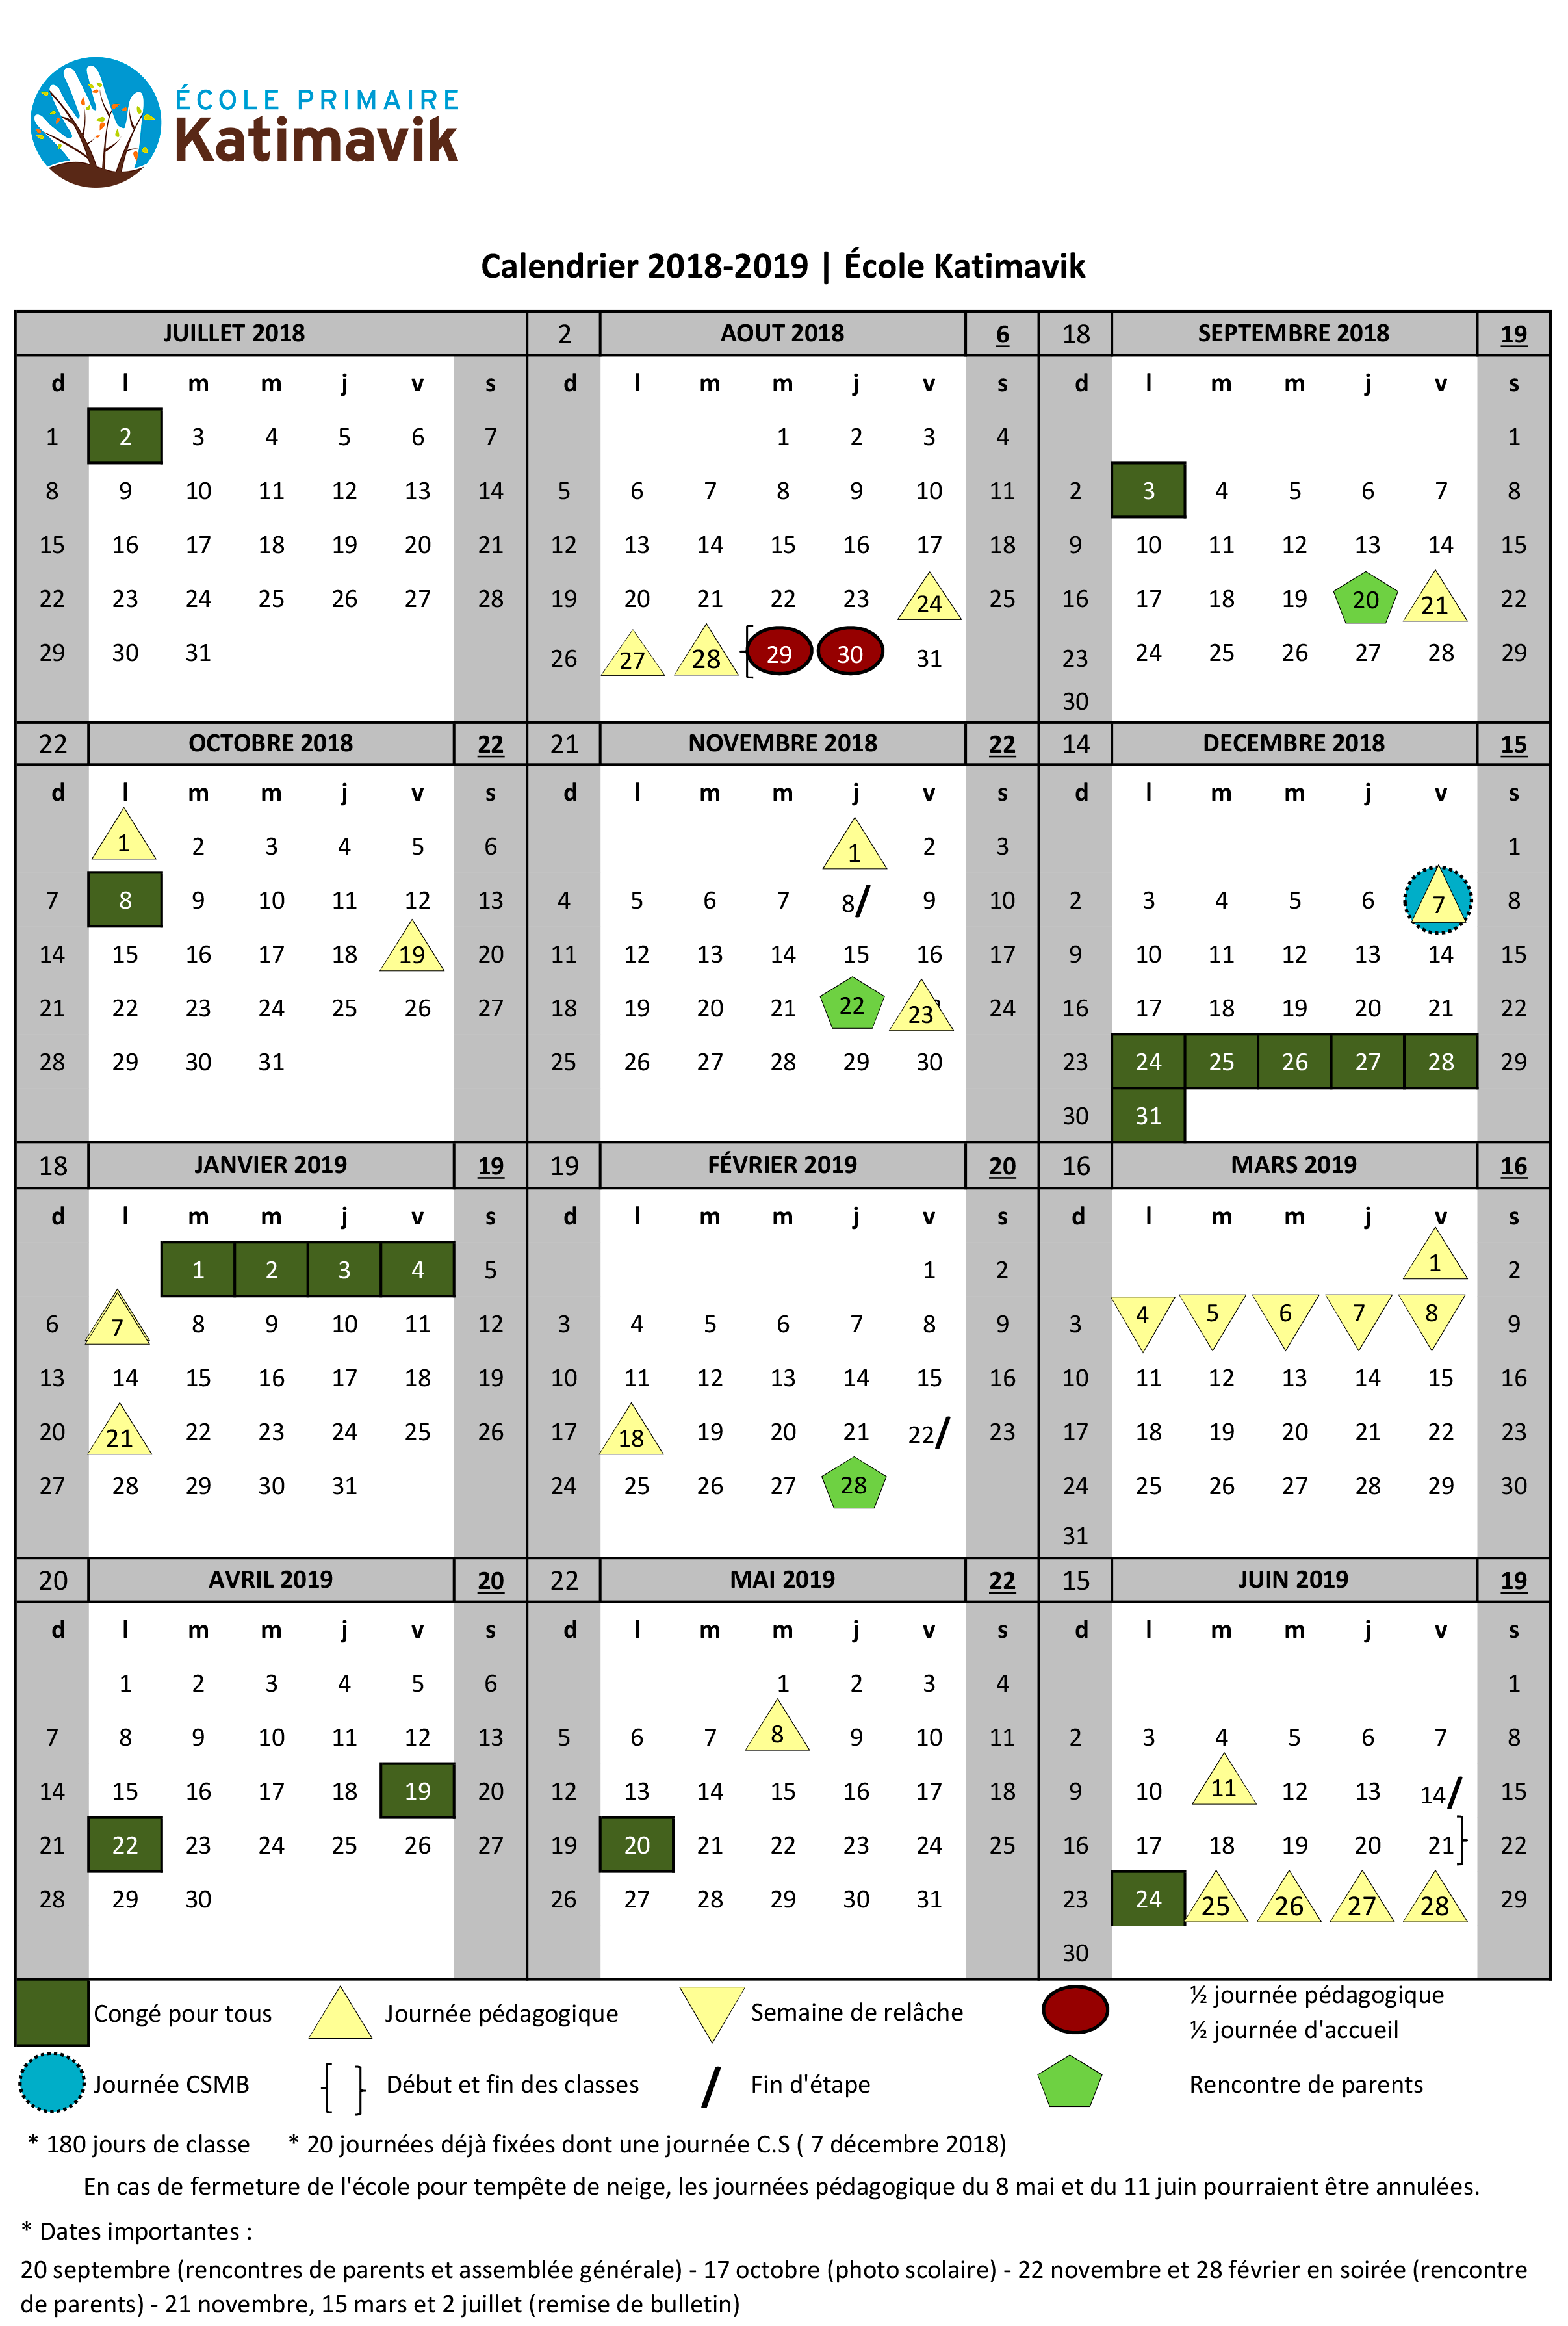 application Calendrier de rencontres sous les sites de rencontres âgés